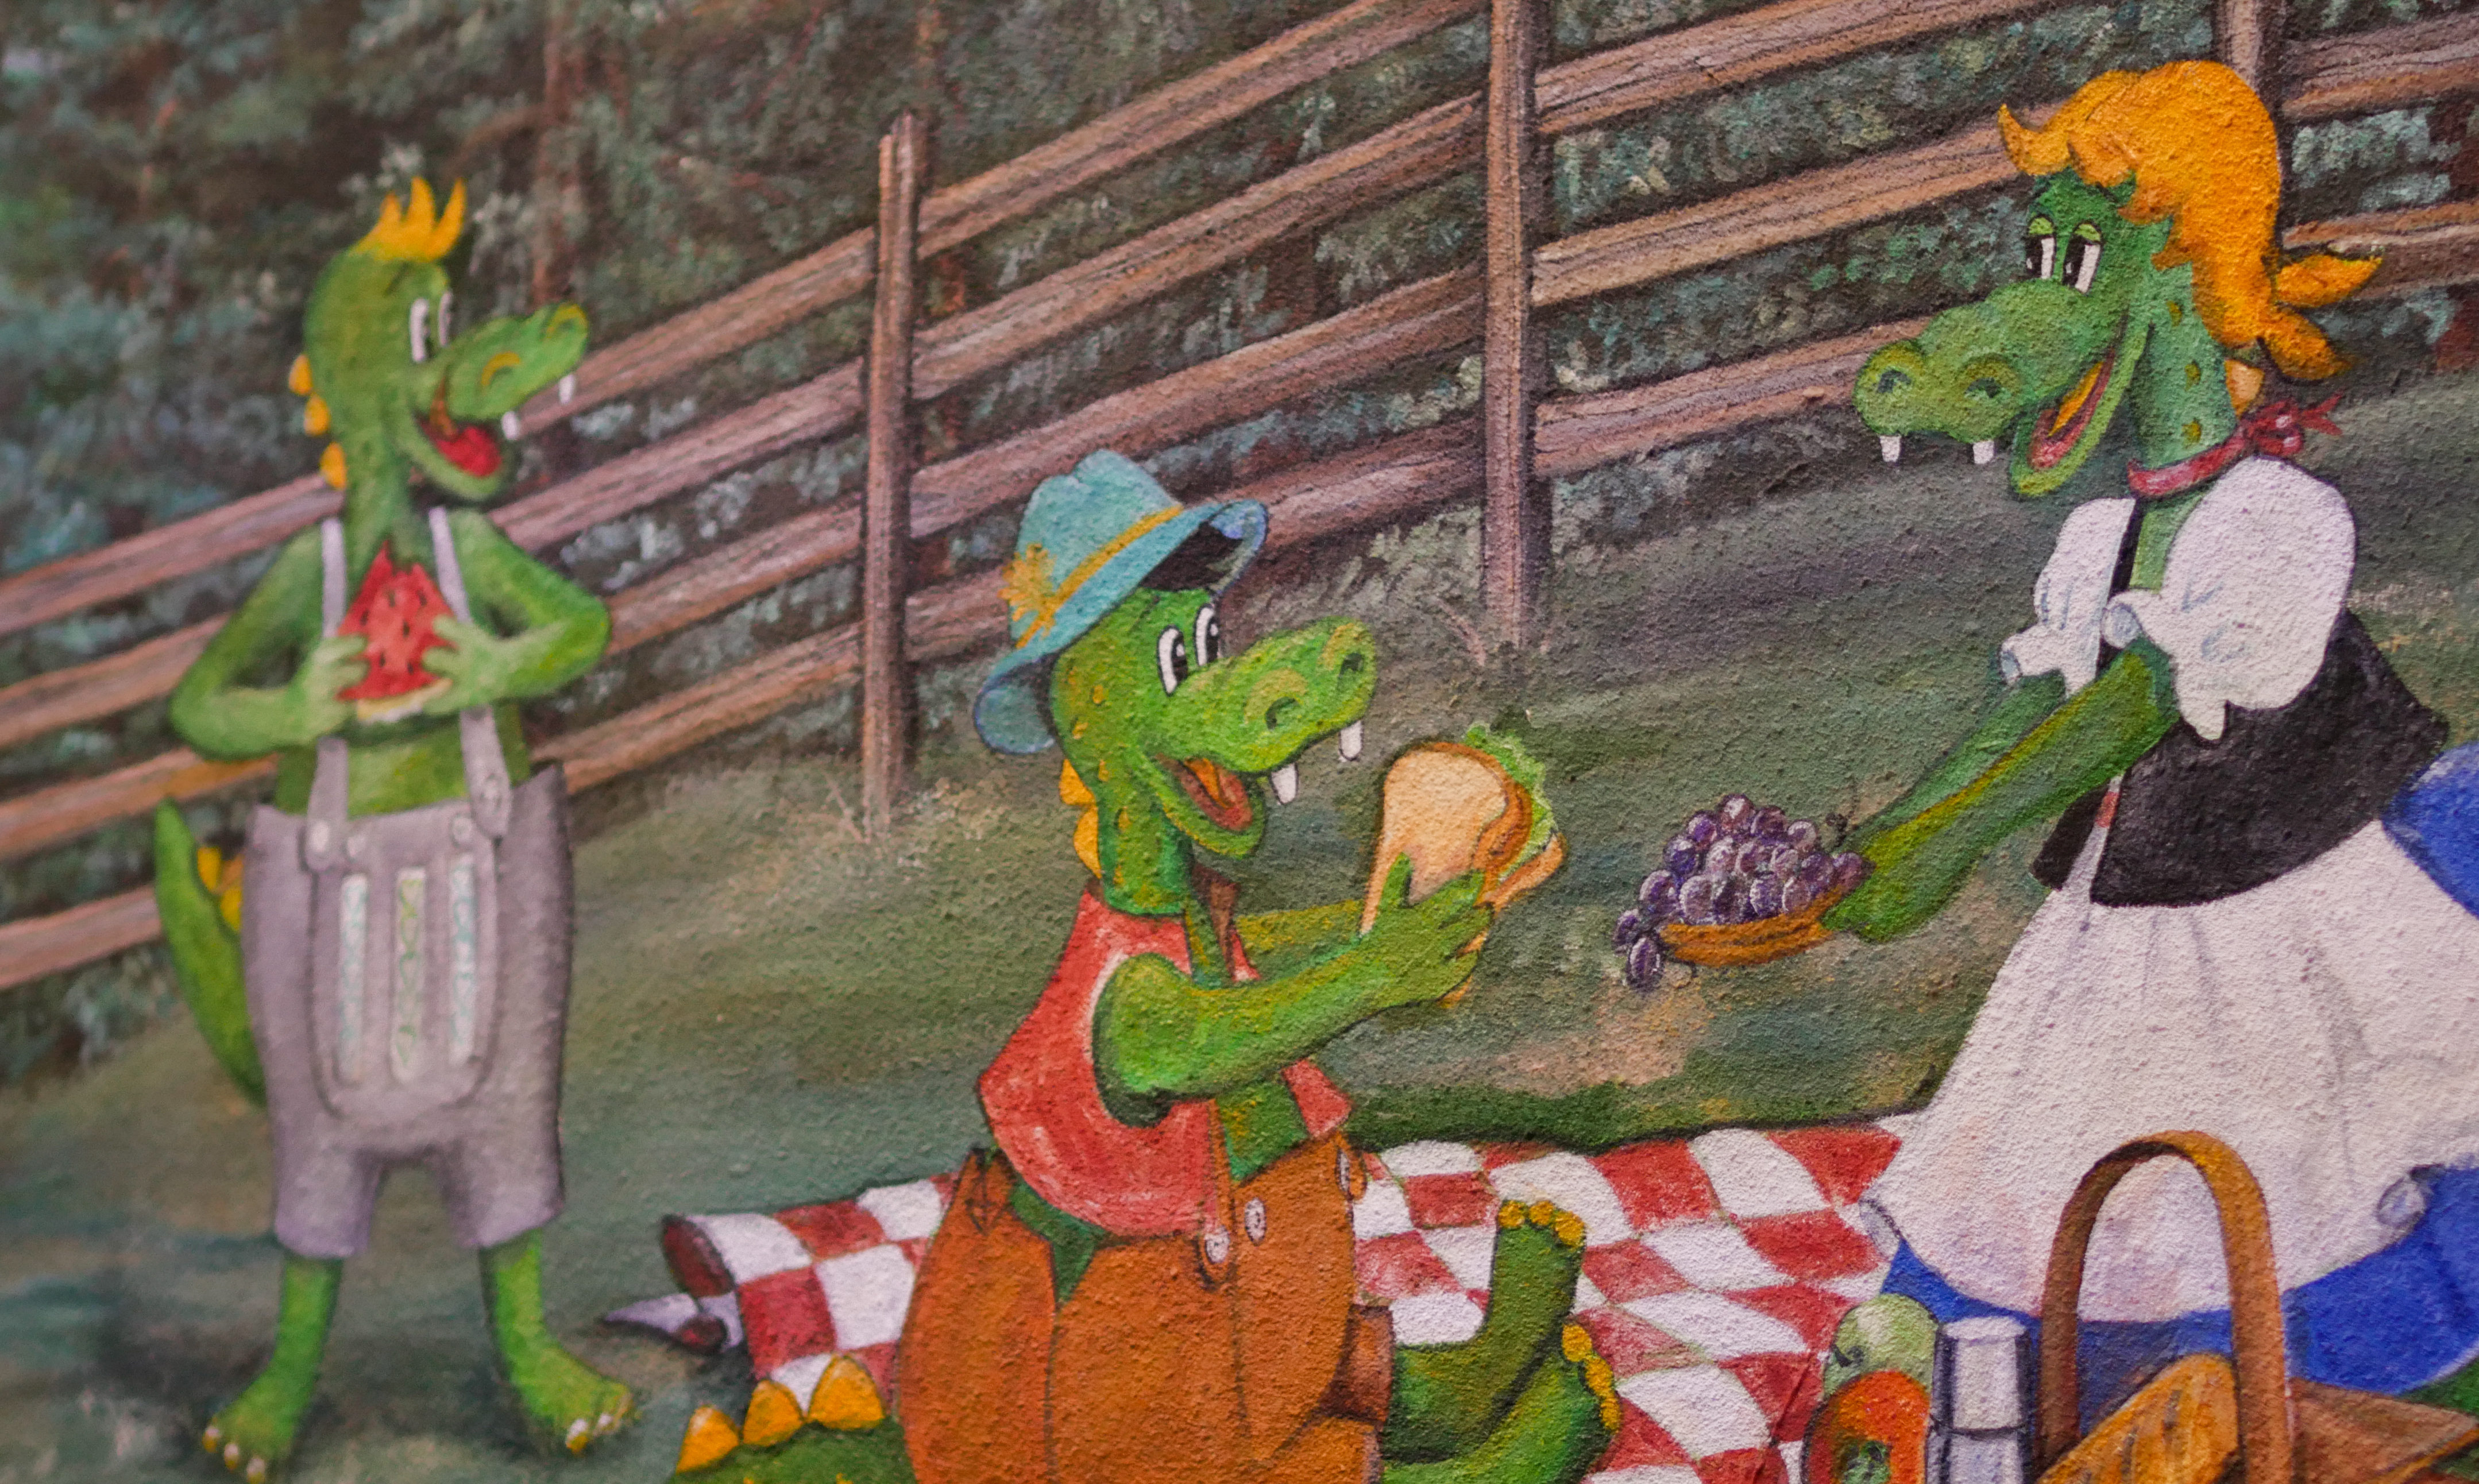 7 Facts You May Not Know About Willy the Dragon